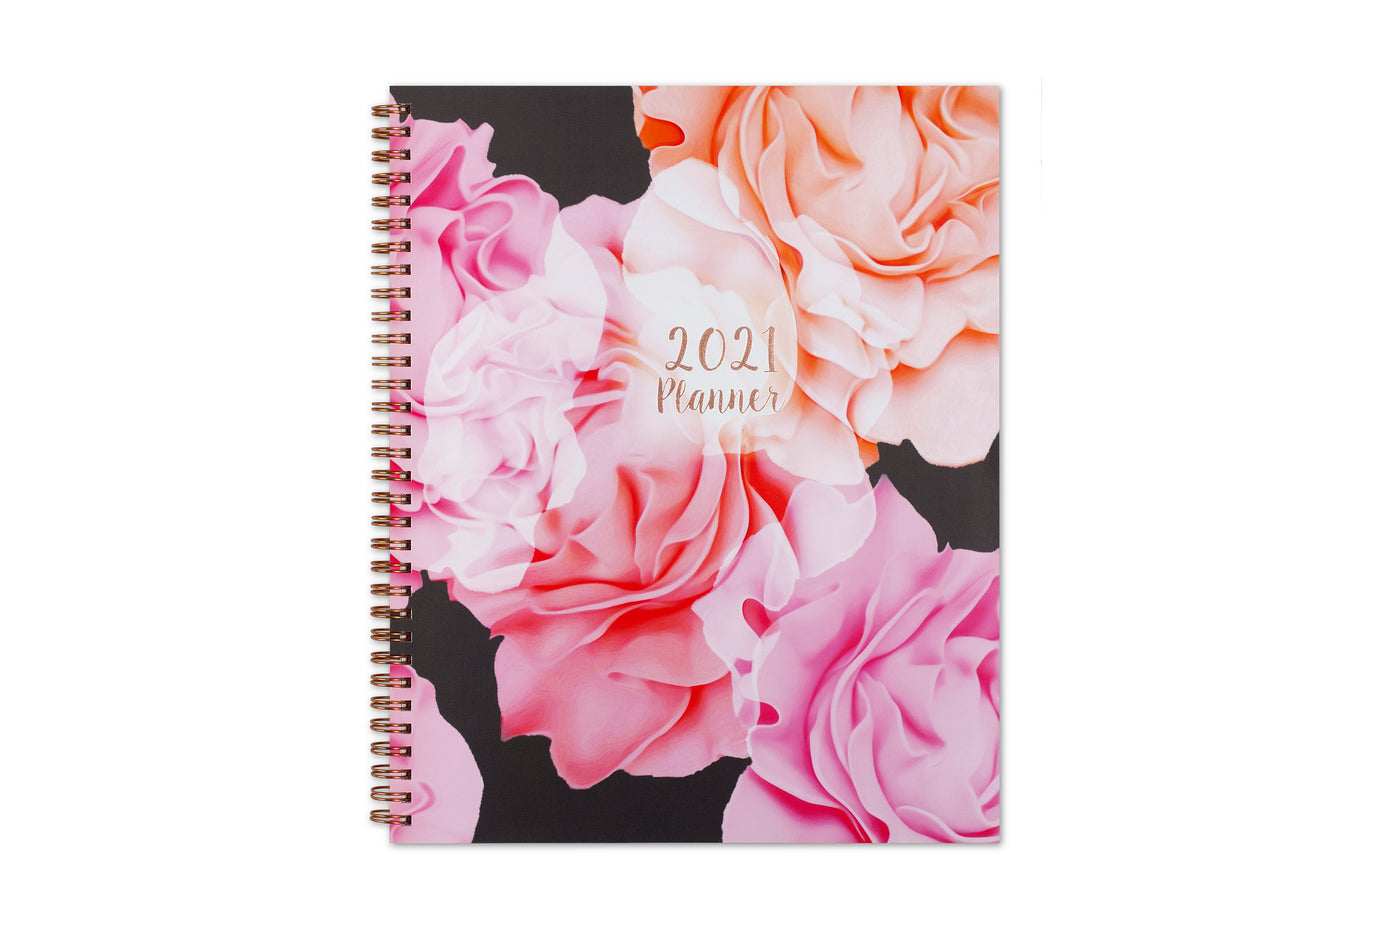 Blue Sky 2021 weekly monthly planner for the new year featuring Joselyn, rose gold twin wire-o binding, gold accents for date, and florals 8.5x11